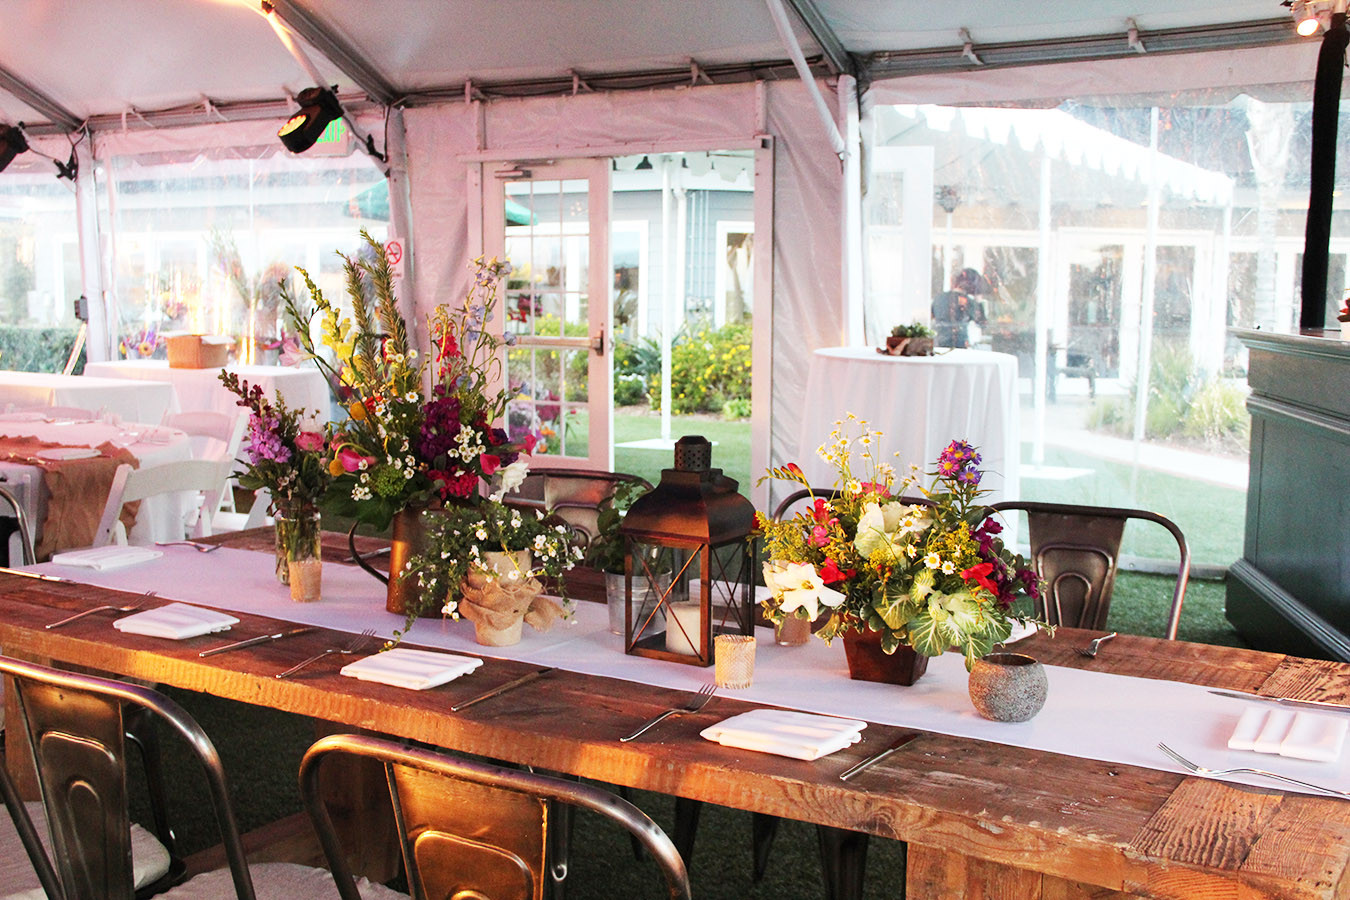 Farmers Market Long Table Grouping 5.jpg